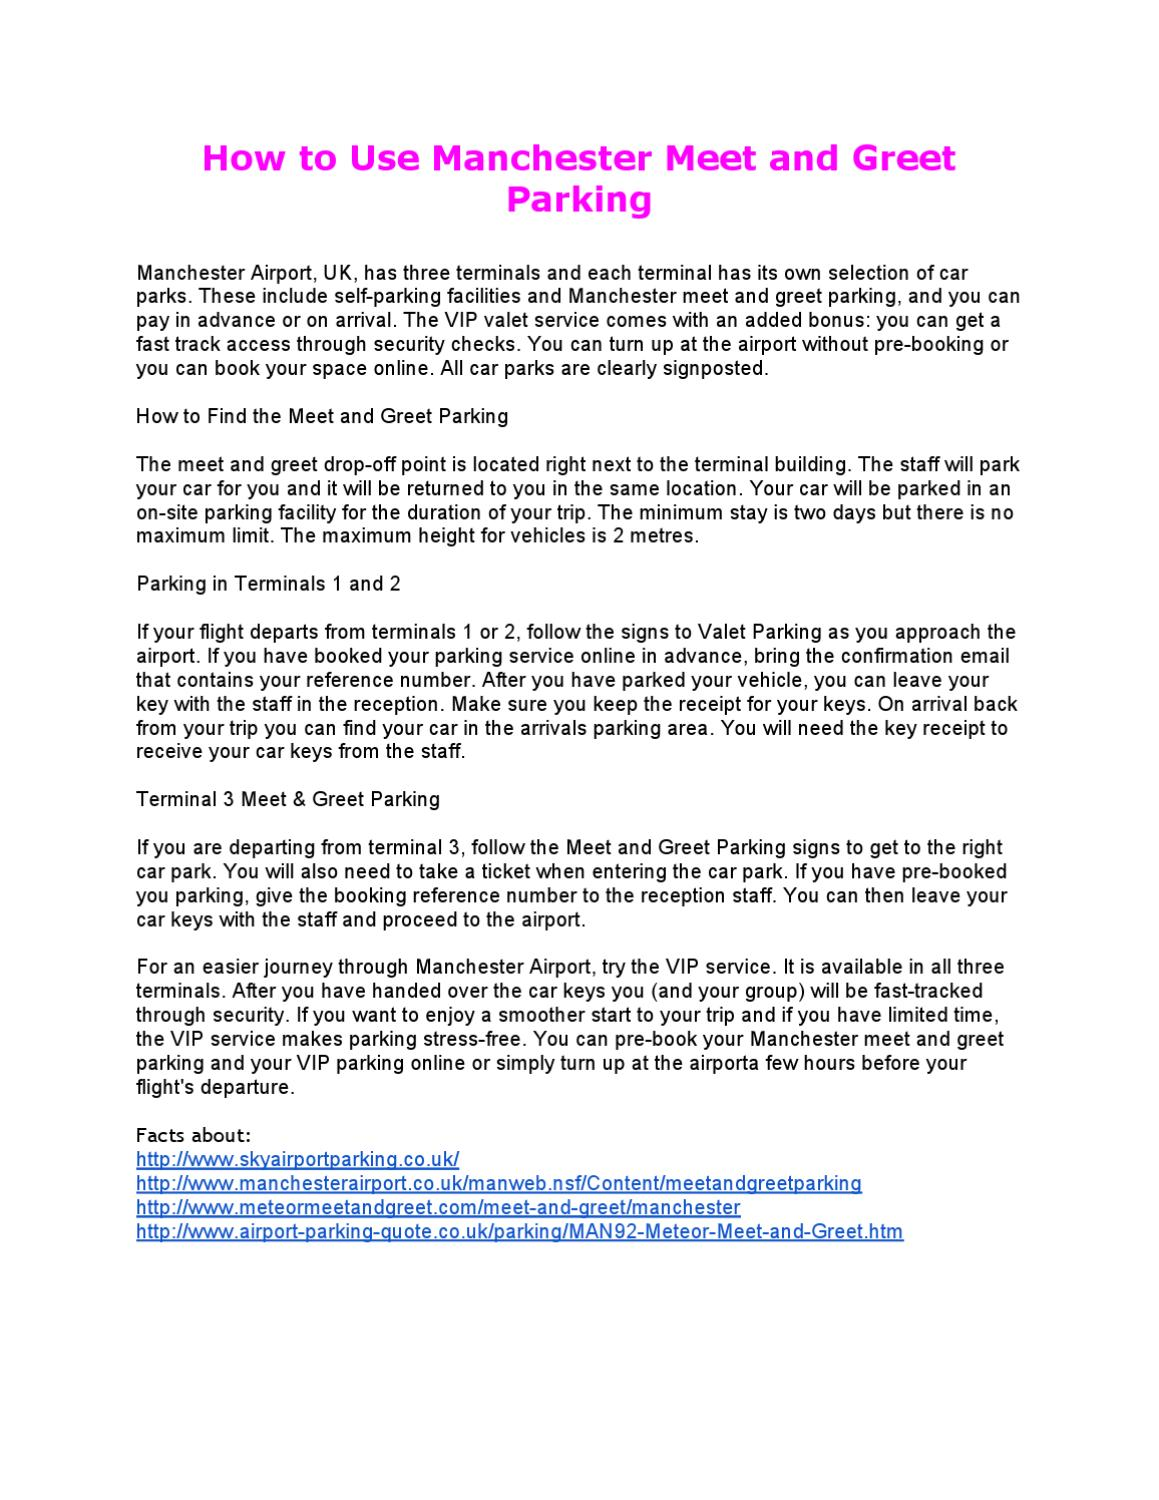 Manchester meet and greet parking by scott ziebarth issuu m4hsunfo